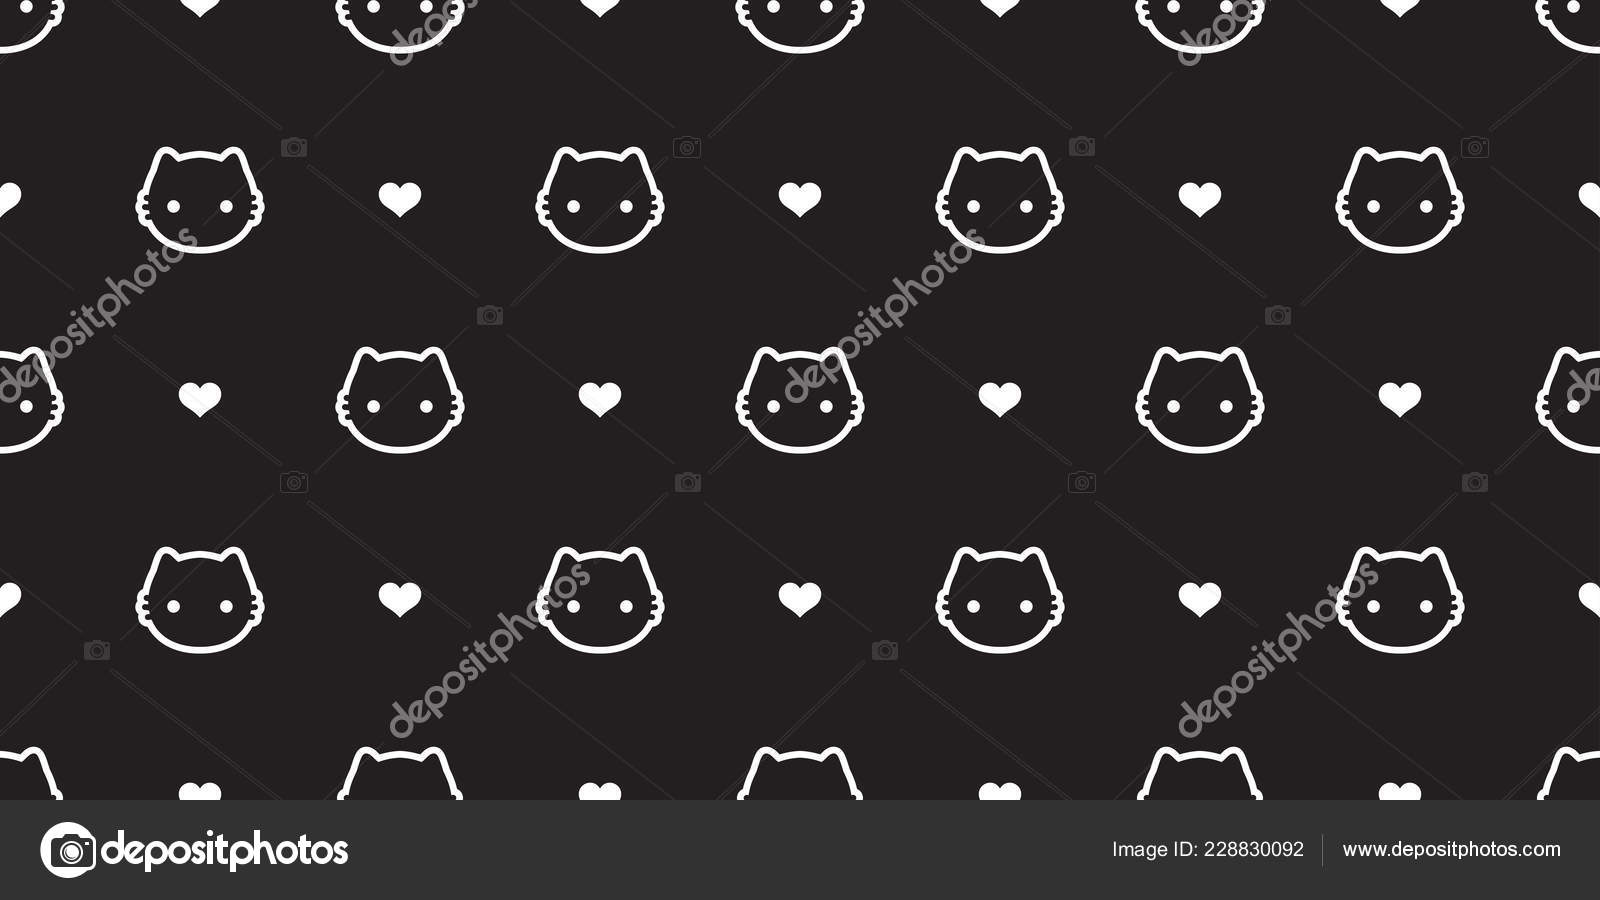 Cat Seamless Pattern Vector Kitten Calico Heart Valentine Halloween Tile Background Scarf Isolated Wallpaper Stock Il Ration